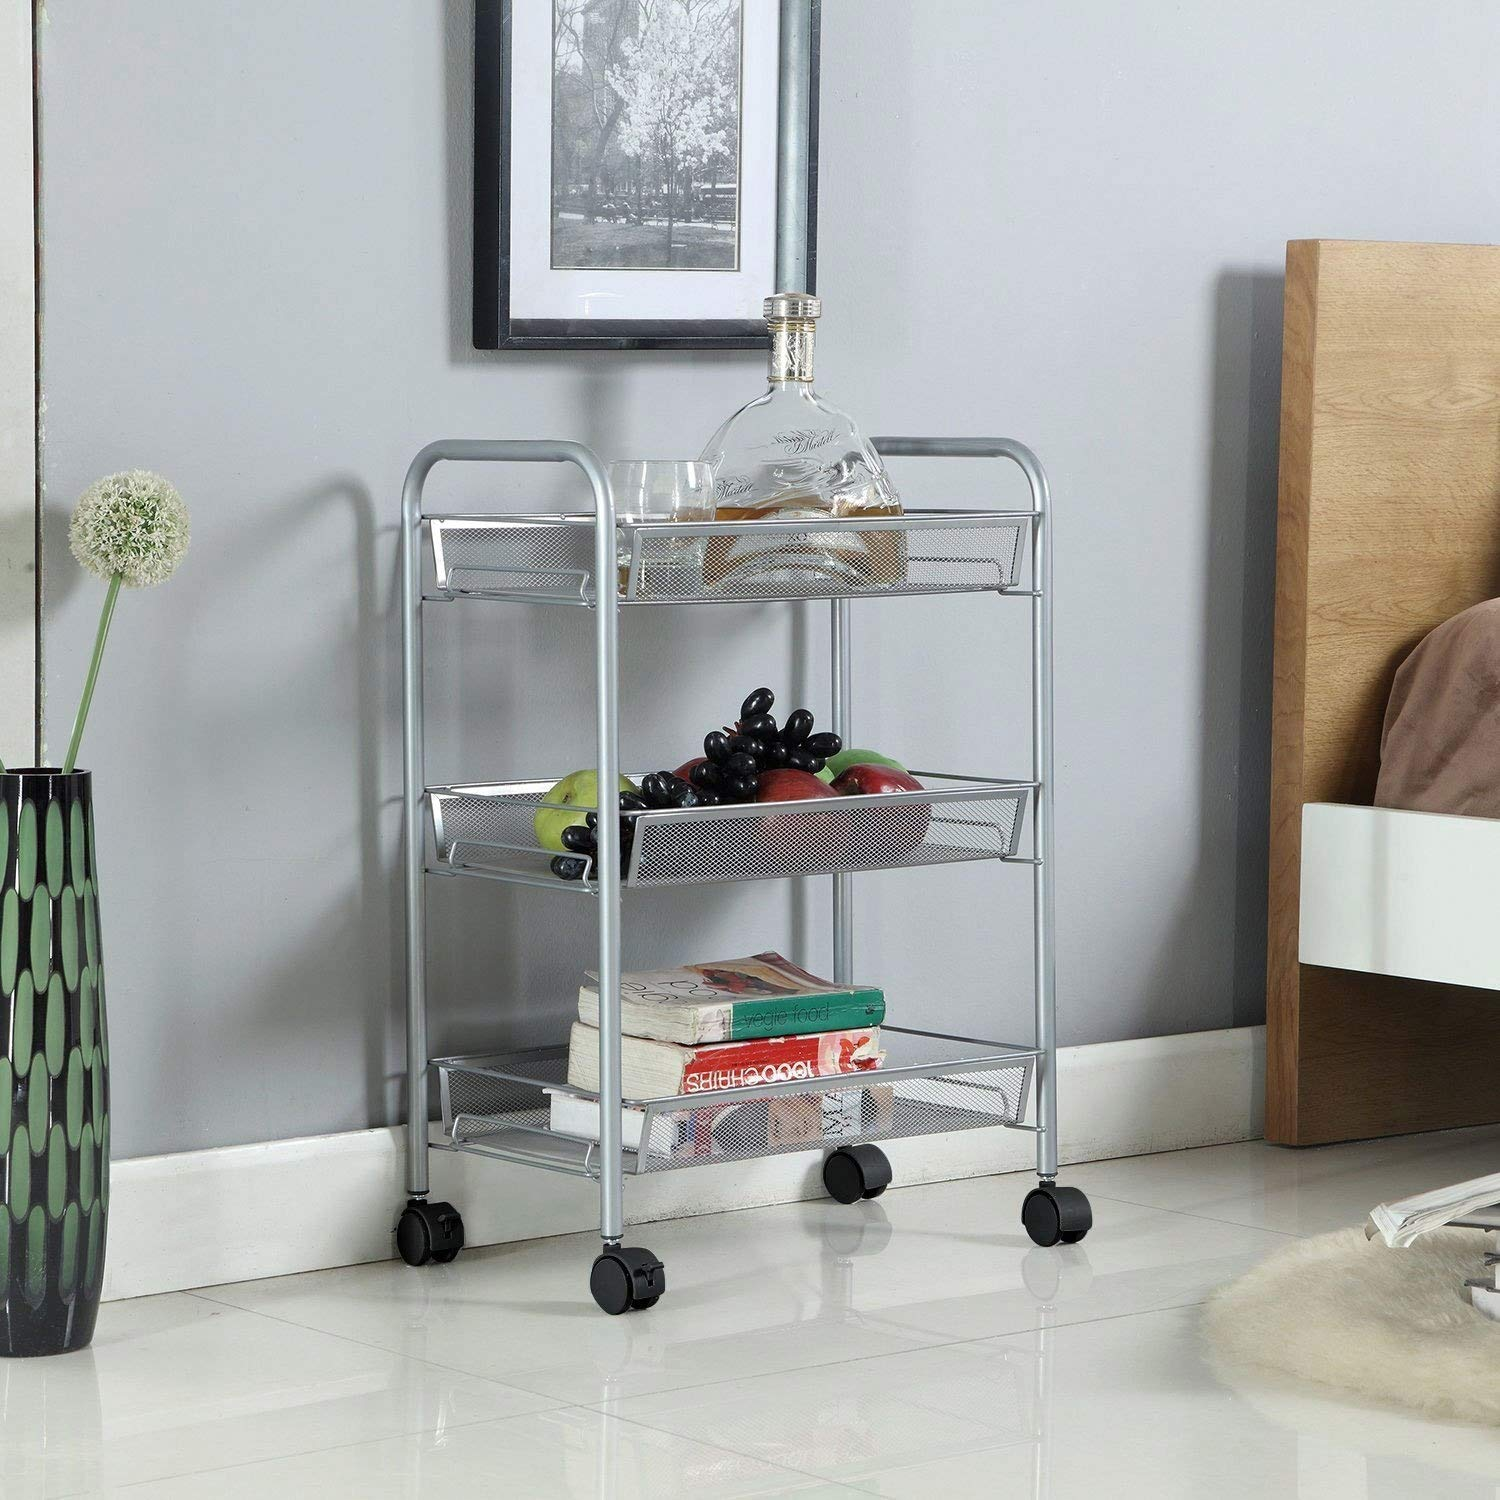 Taylor /& Brown All Purpose Shelving Metal Mesh Storage Units Sturdy Rolling Cart Bathroom Home Suitable For Kitchen Serving Trolley White, 3 Tier Office